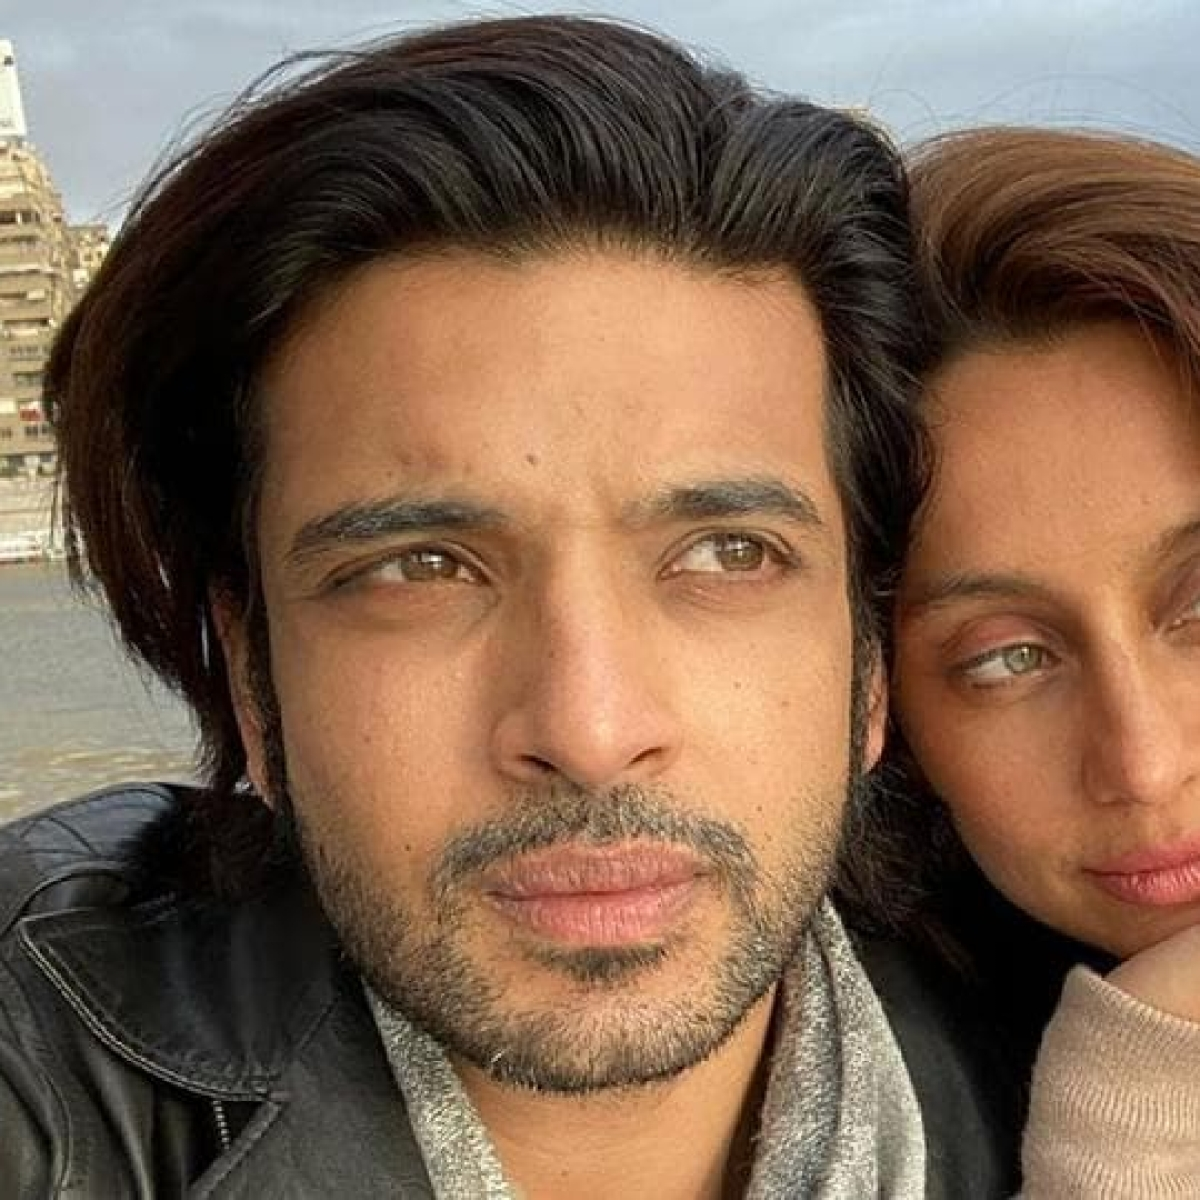 'Sad how some people believe their own lies': Anusha Dandekar claps back at ex-boyfriend Karan Kundrra with cryptic post